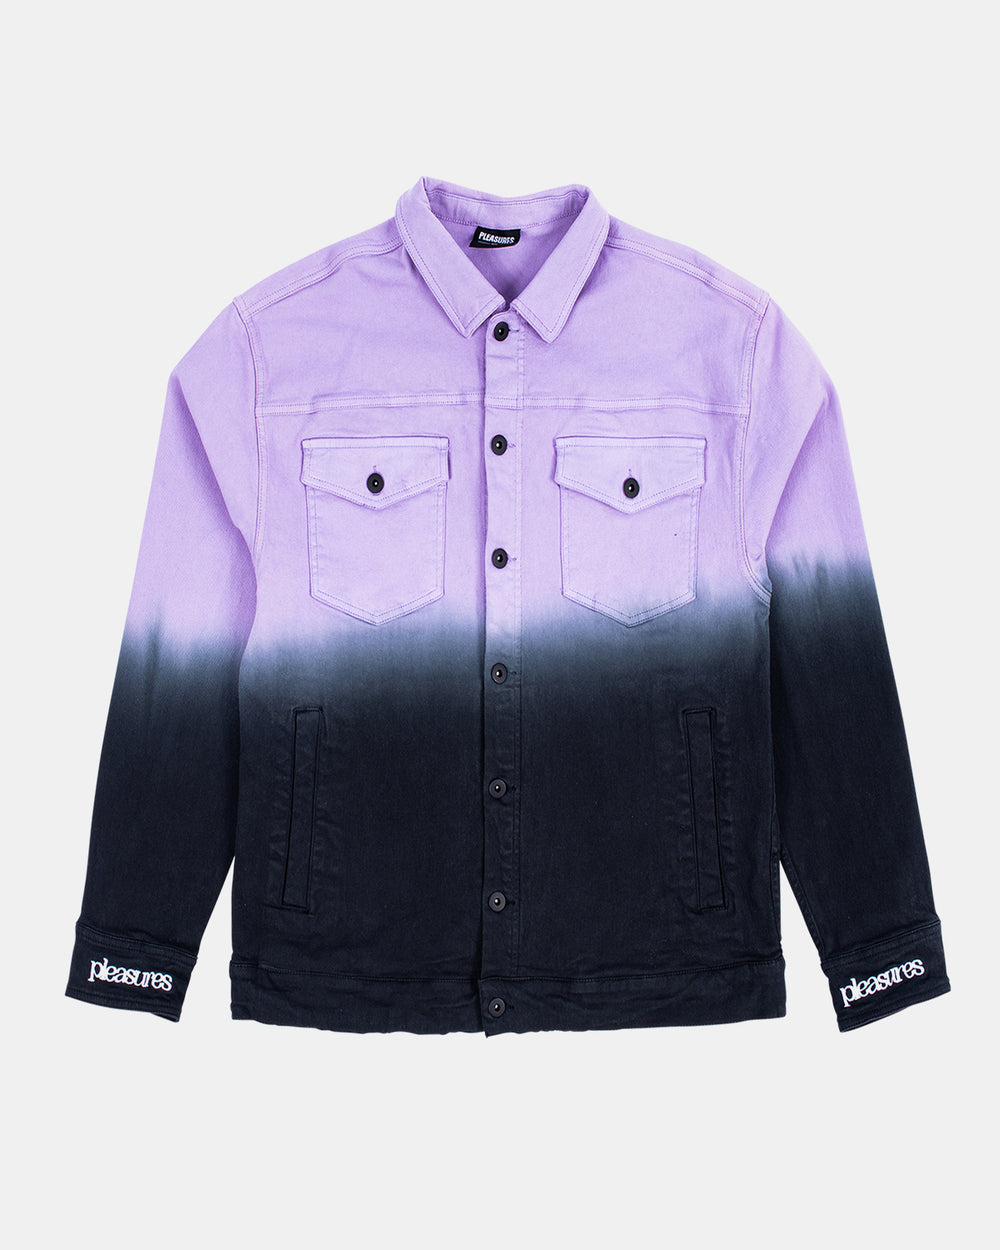 PLEASURES - Dawn Trucker Jacket (Purple)